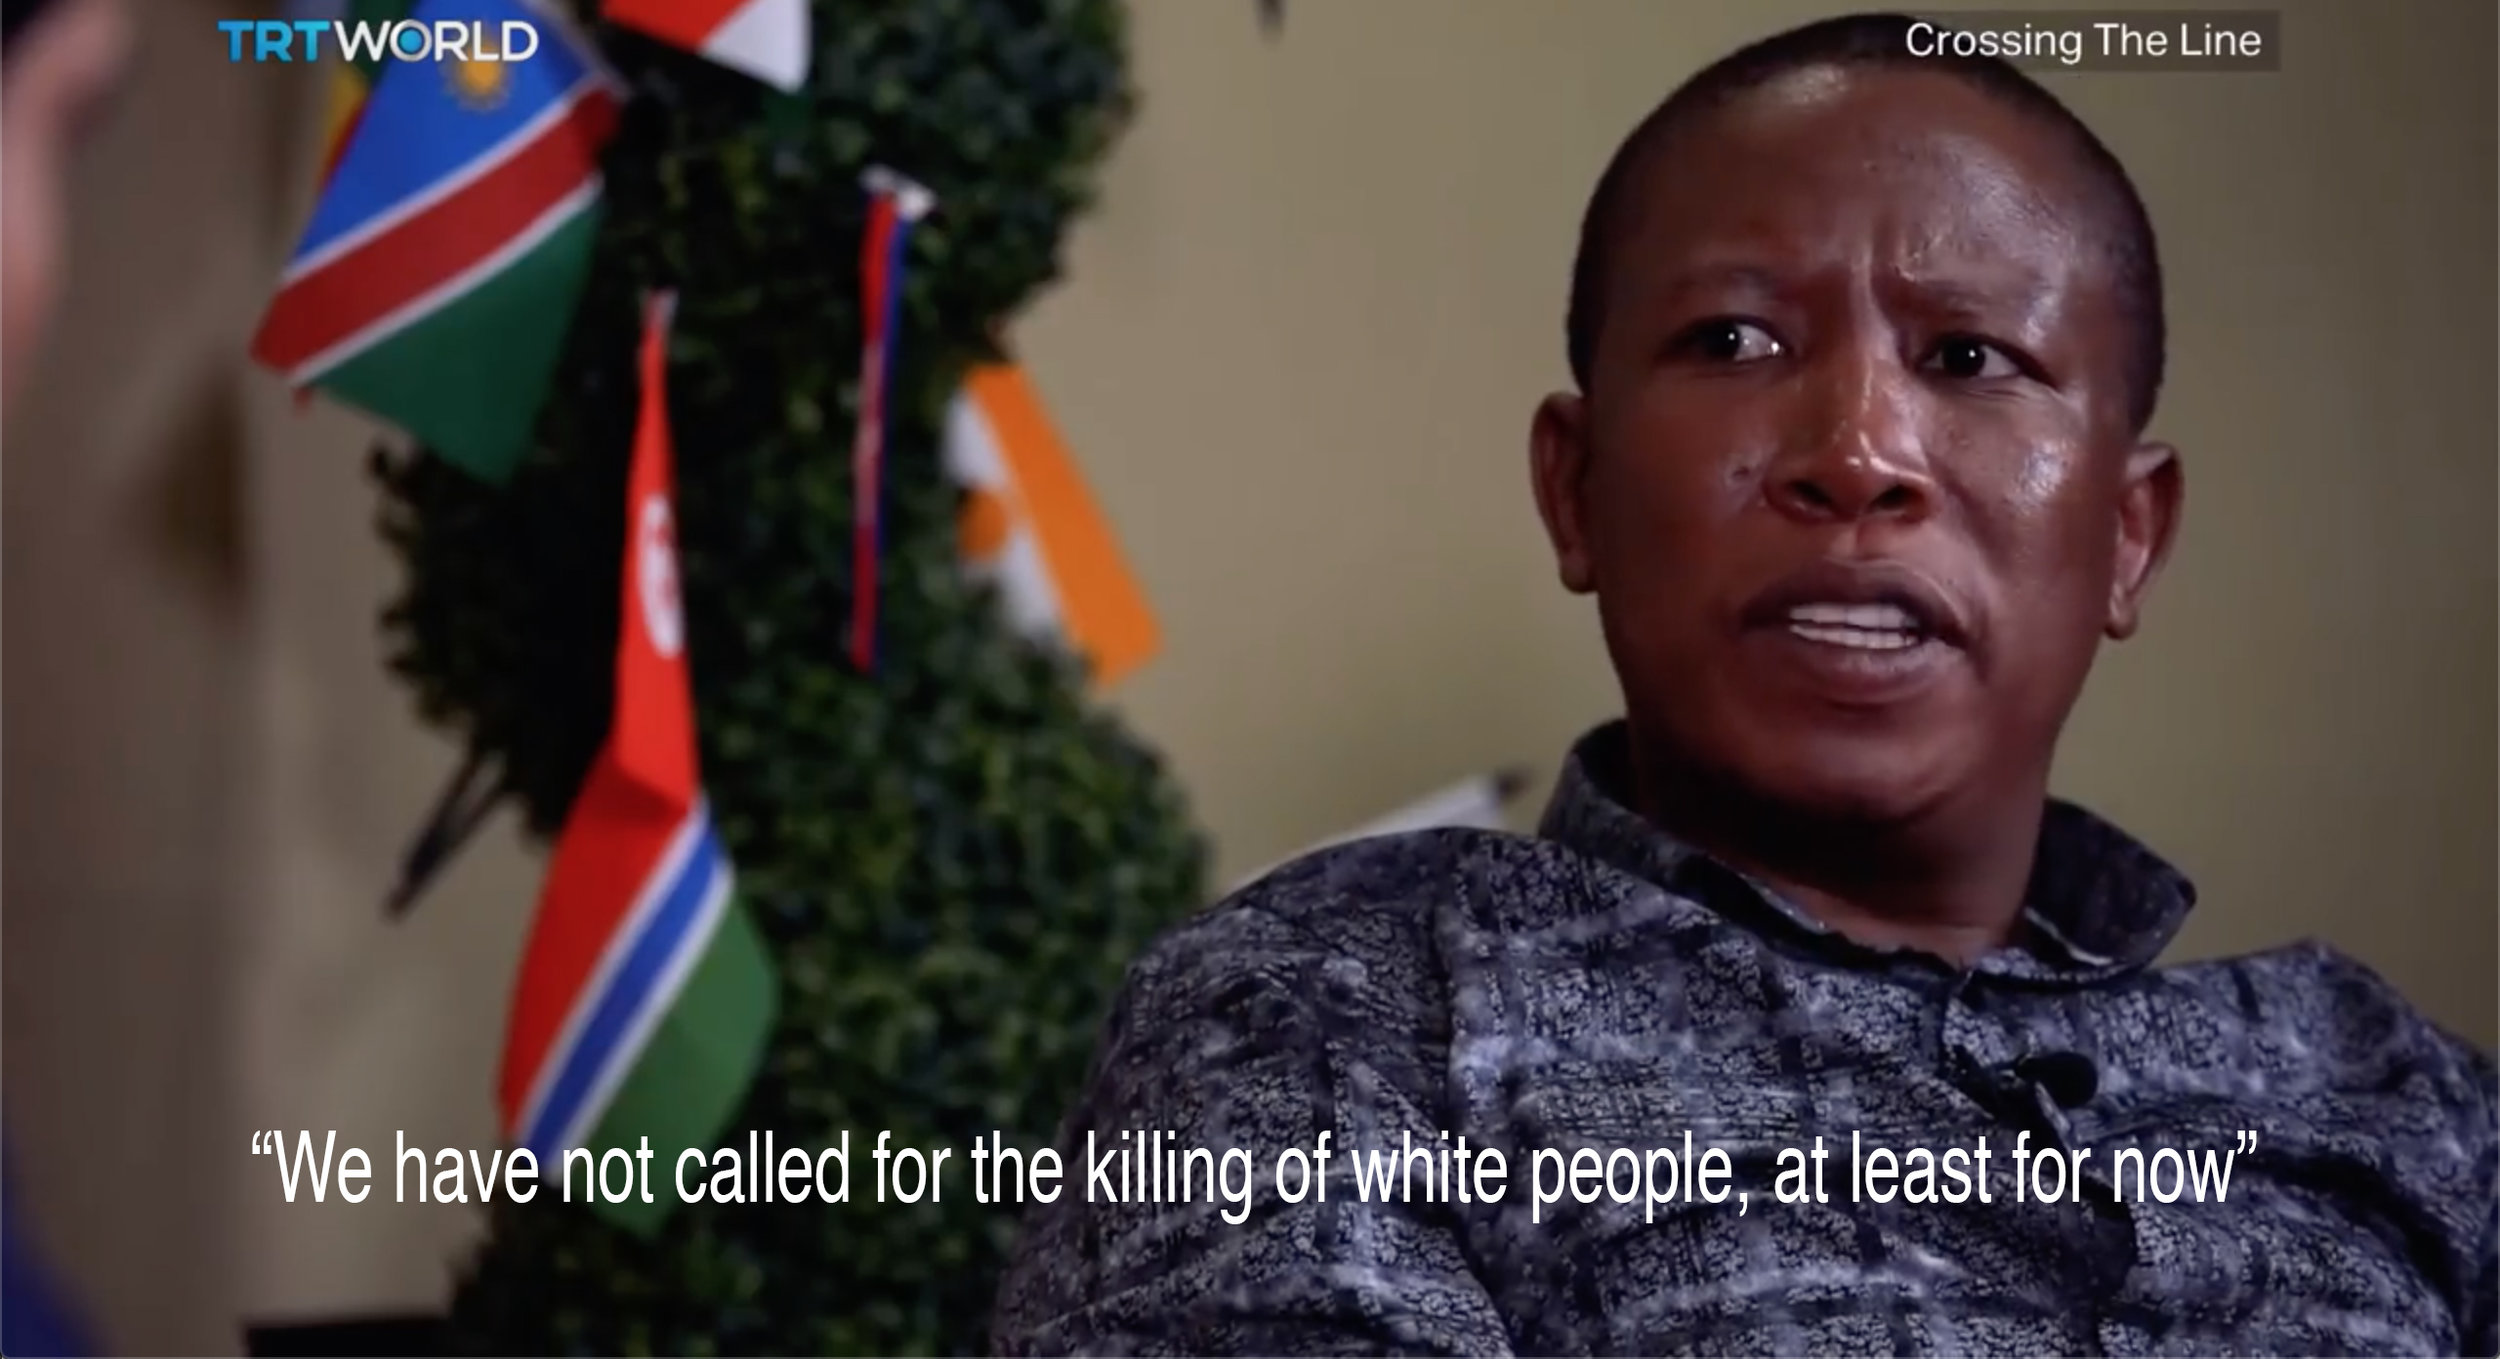 Julius Malema, South African politician, speaking to TRT world, June 13th 2018